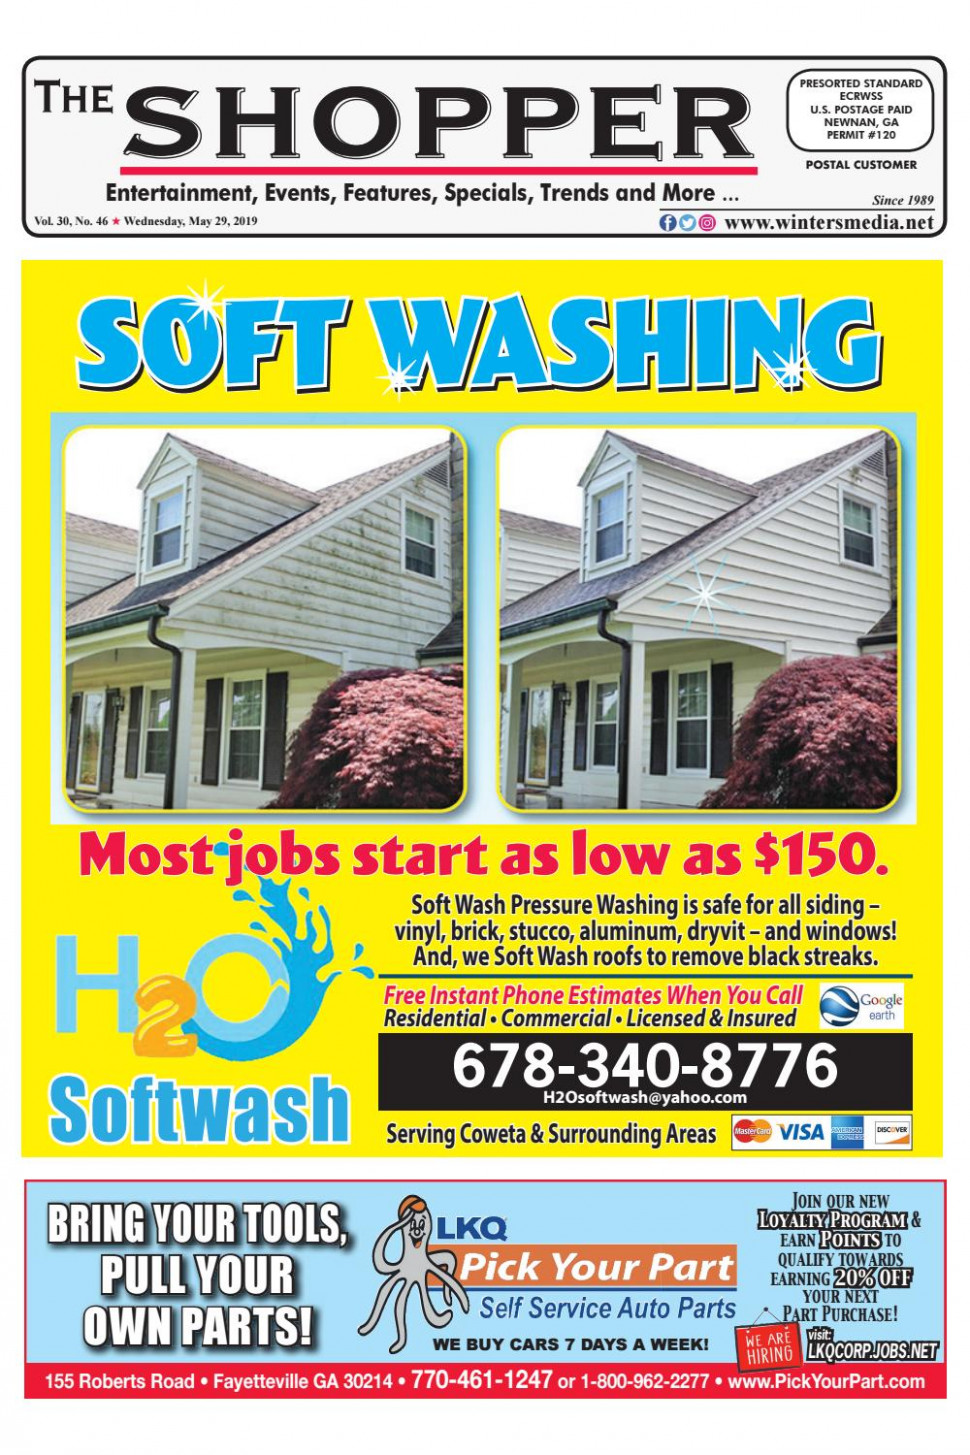 The Shopper May 9, 9 Issue By The Coweta Shopper Issuu Carports Decorating Jobs